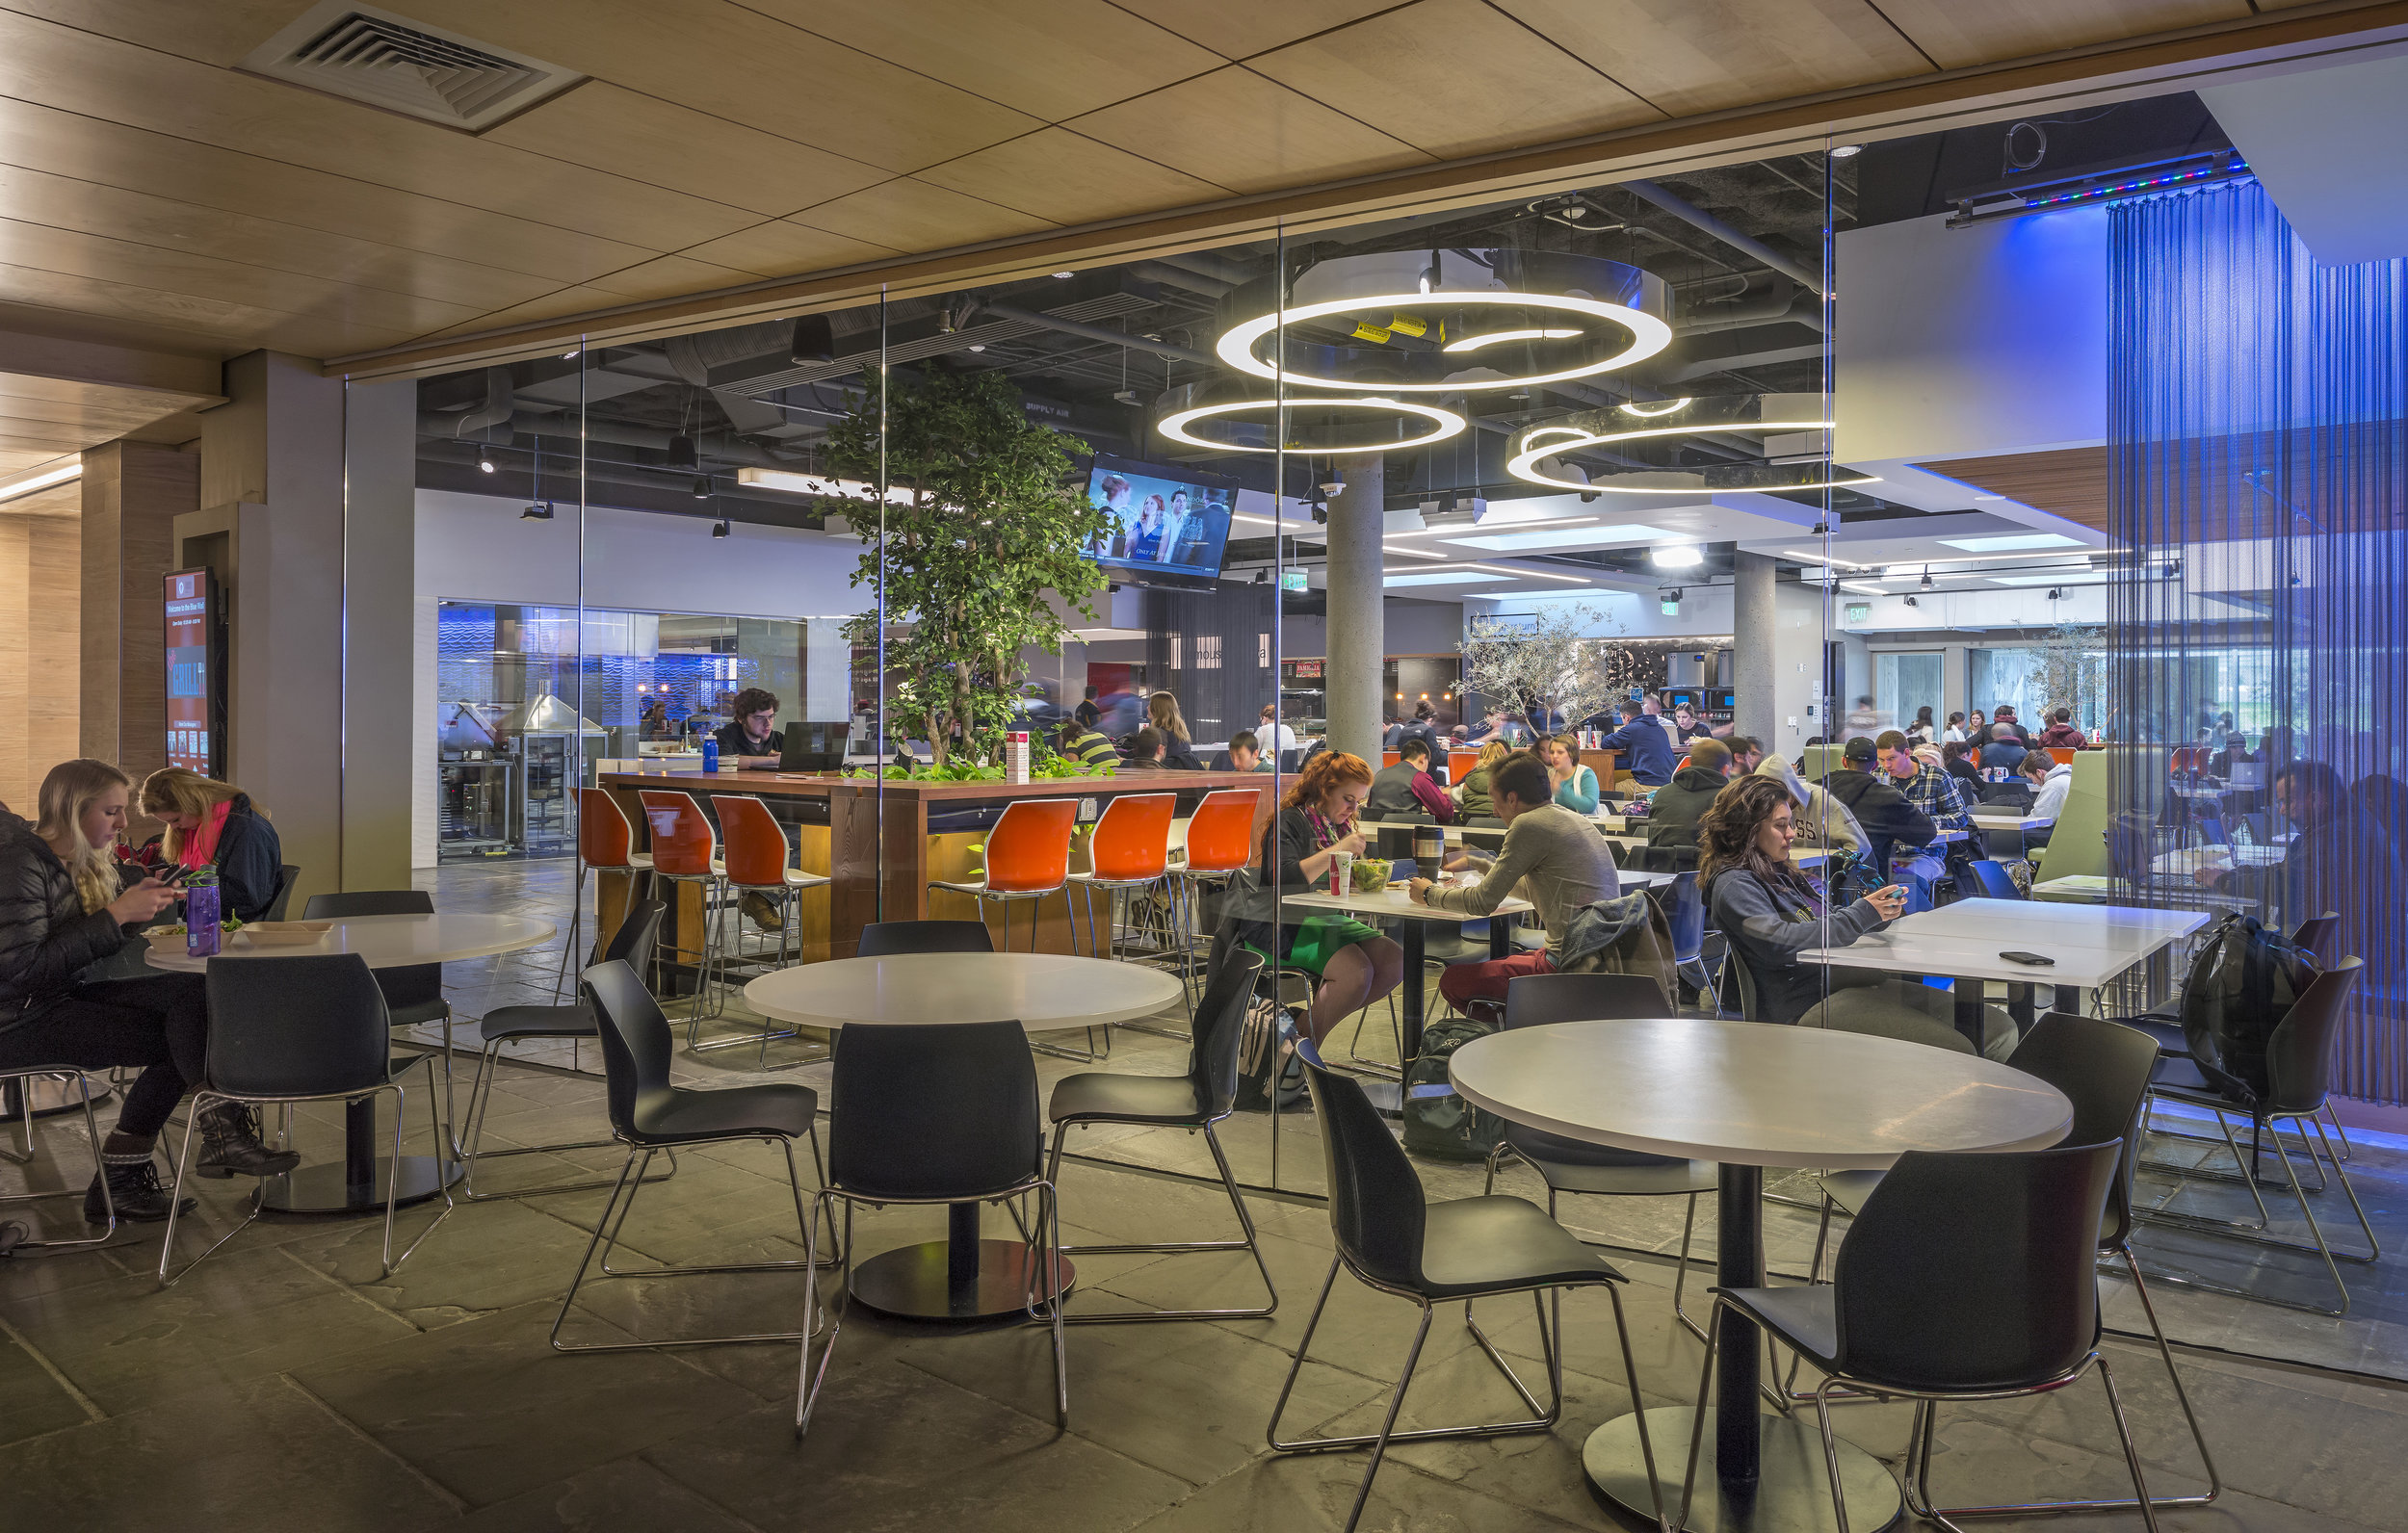 LINCOLN CAMPUS CENTER DINING HALL -